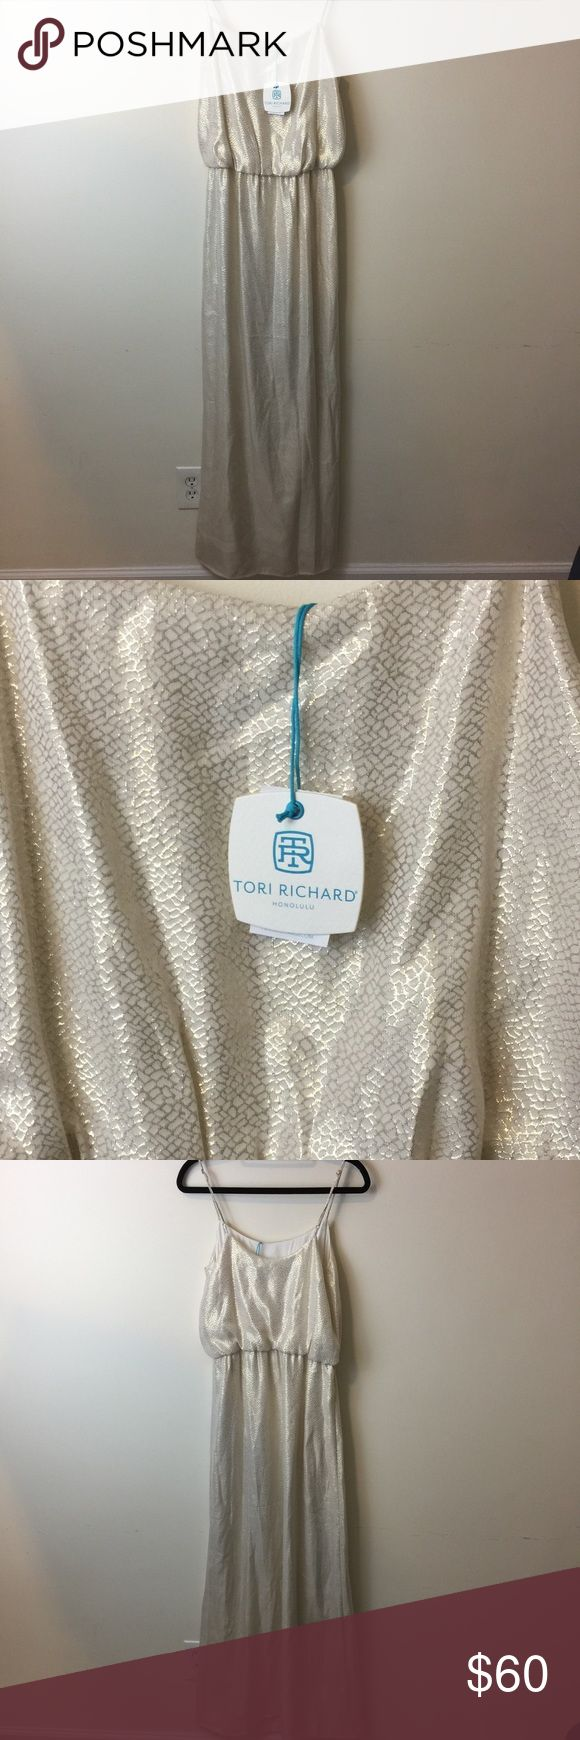 NWT Tori Richard White Metallic Maxi Dress Gorgeous NWT Tori Richard dress that is white Metallic and Sleeveless. Lined and Maxi length! Size 2 and looks great as a vacation piece or as a dressier dress for date night! Tori Richard Dresses Maxi